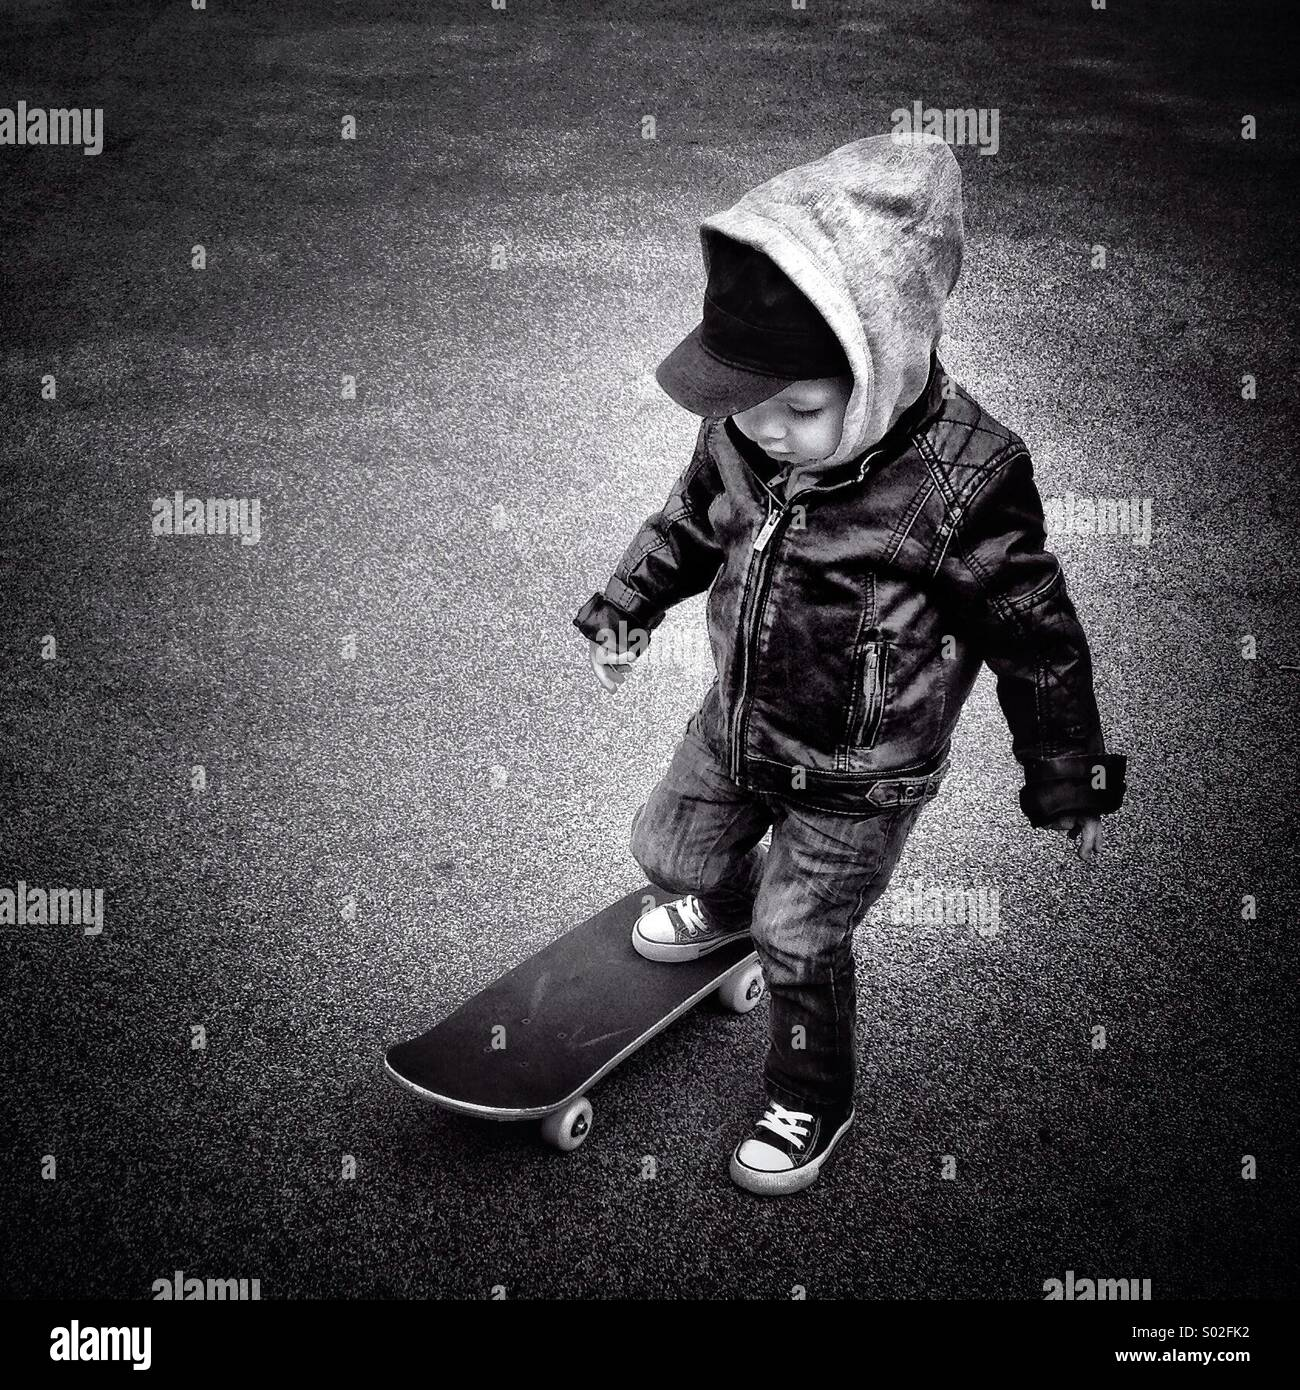 Toddler with leather jacket trying out a skateboard - Stock Image